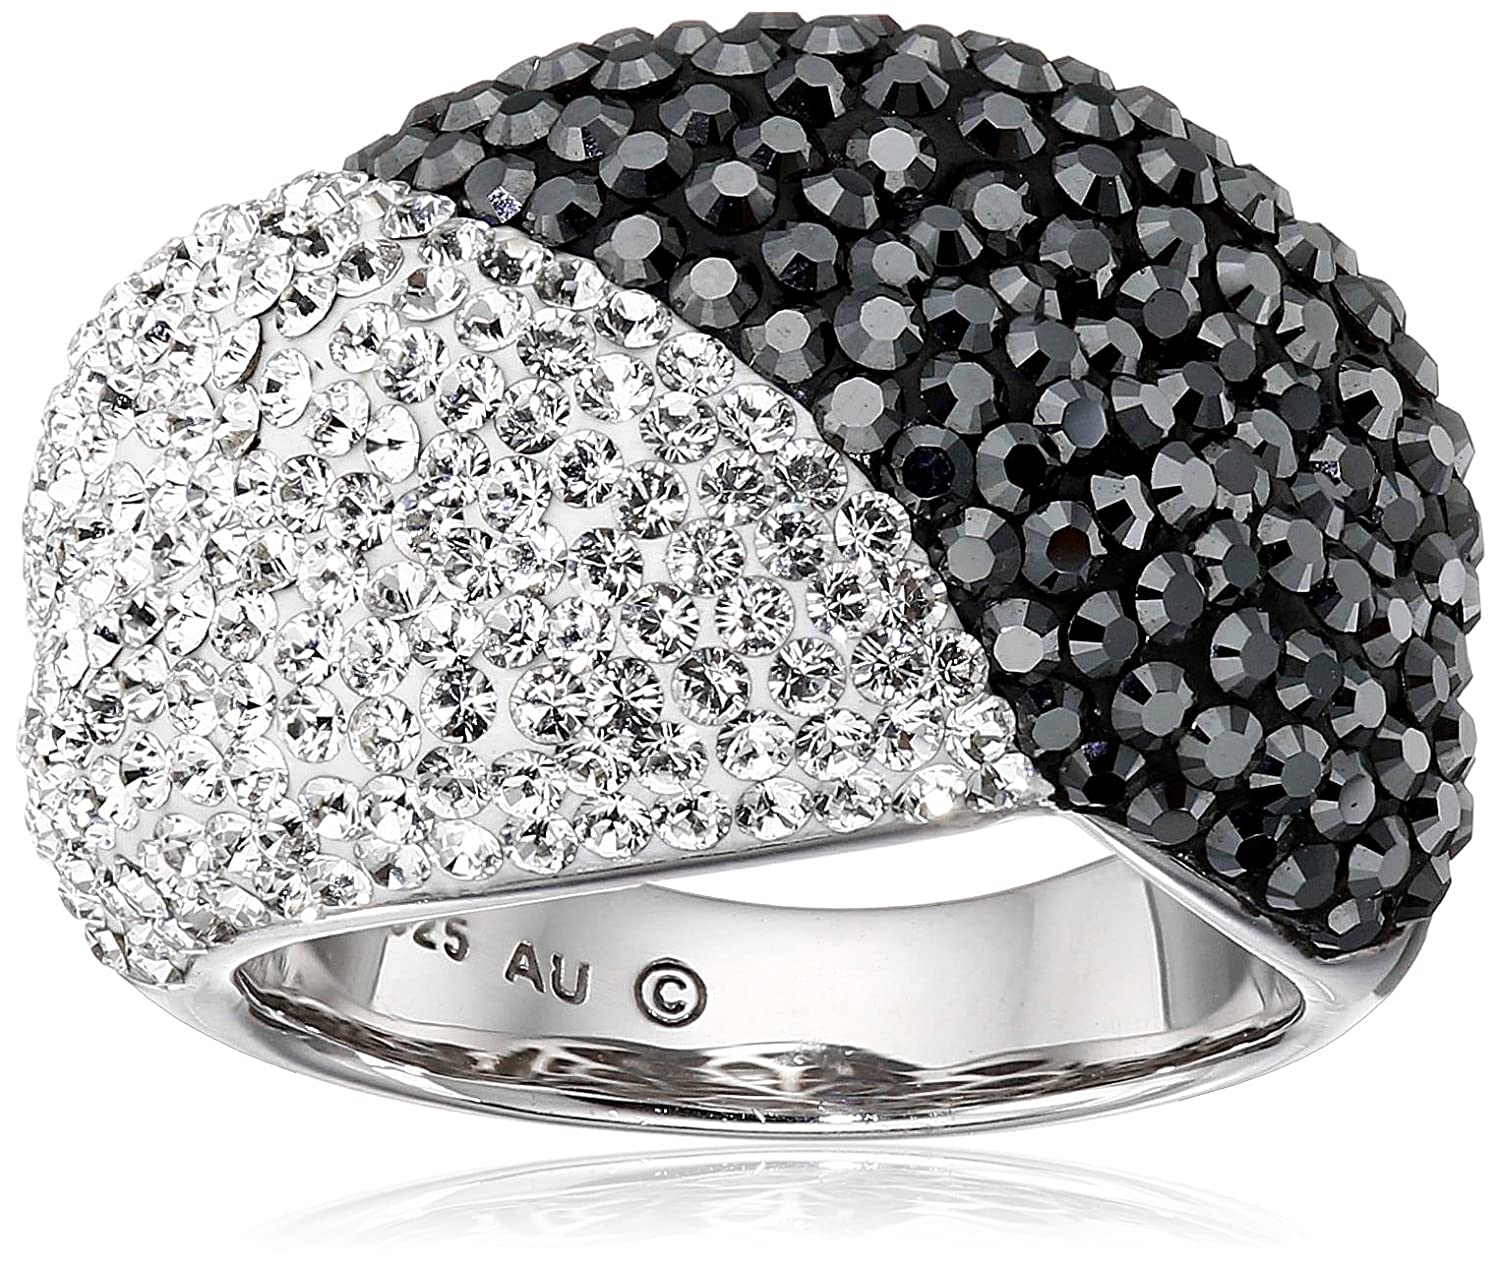 Sterling Silver White and Black with Swarovski Elements Ring, Size 7